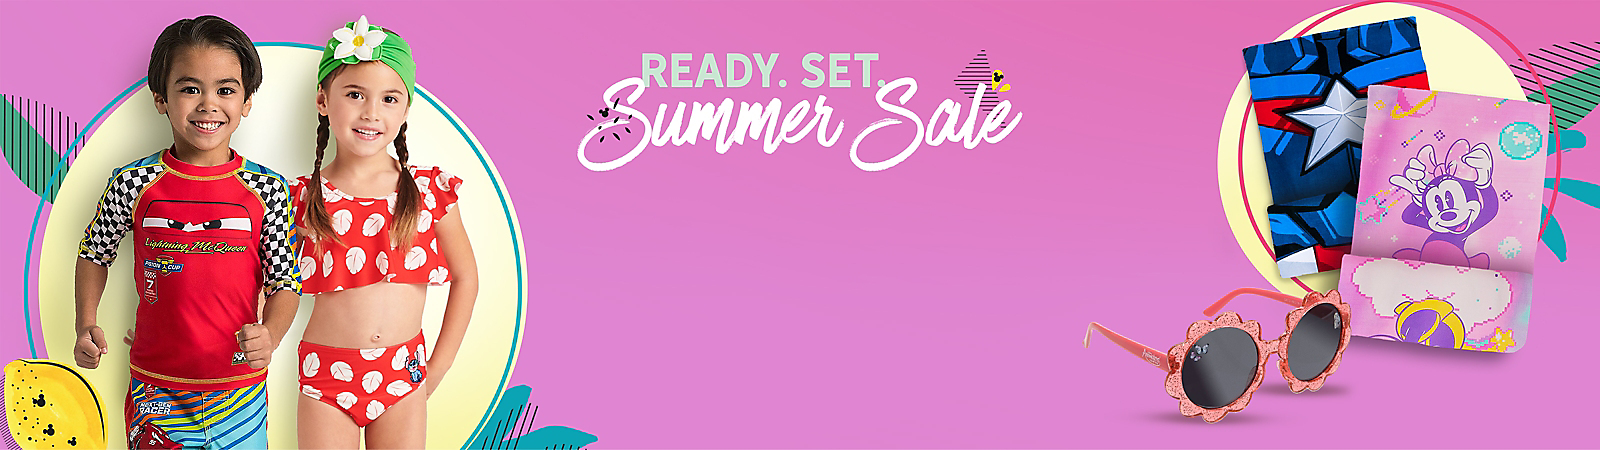 Ready. Set. Summer Sale Boy in Cars swimwear, girl in Little Mermaid swimwear Captain America towel, Minnie Mouse towel Flower-shaped sunglasses